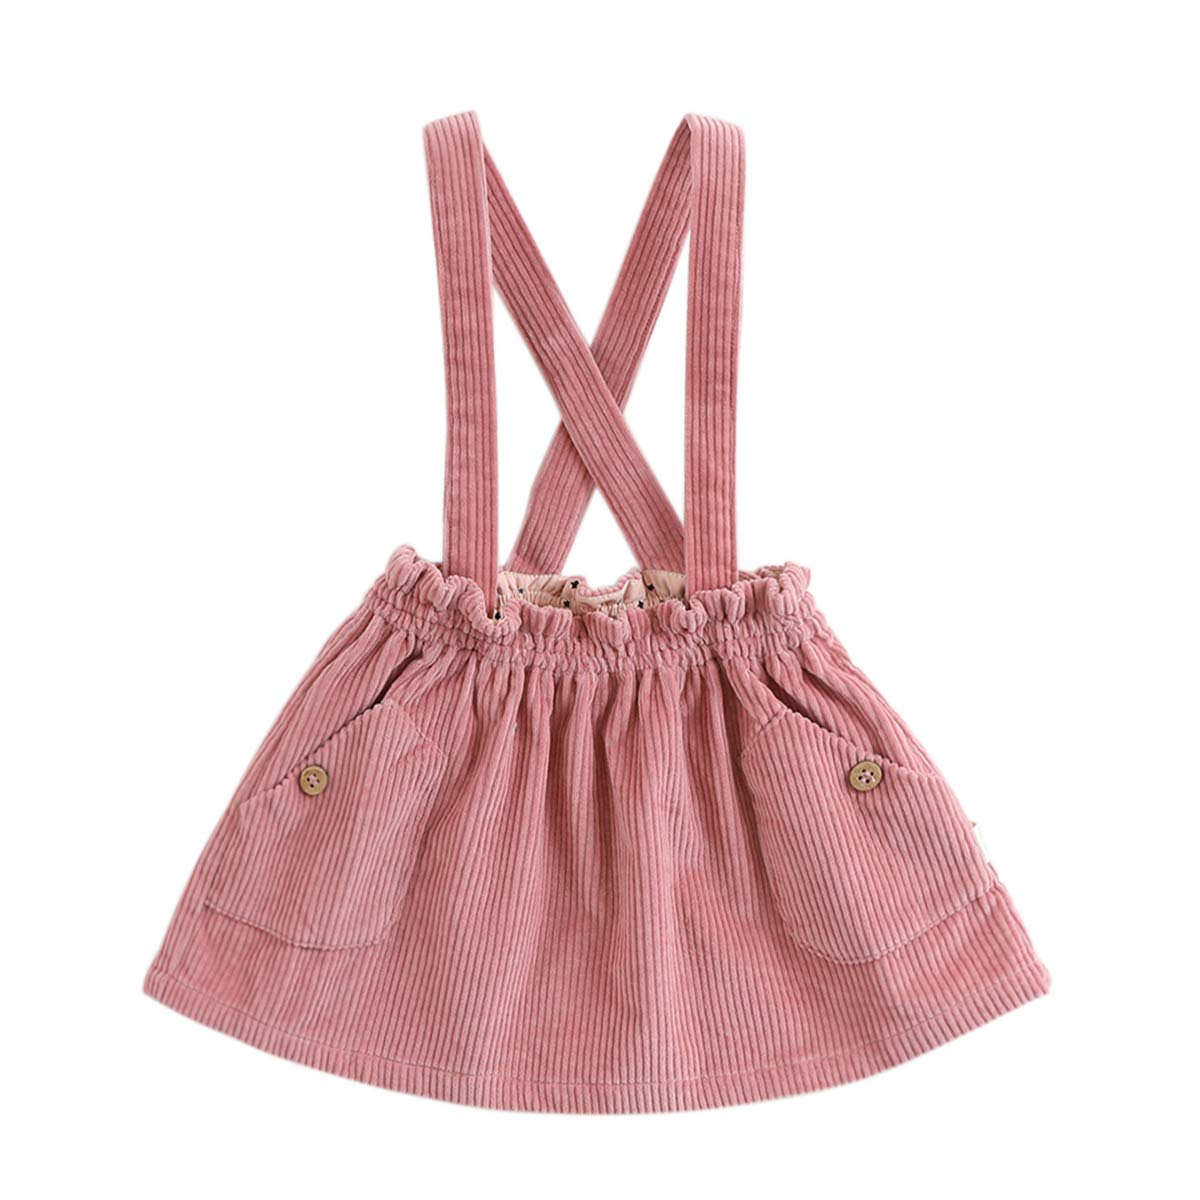 marc janie Little Girls' Autumn Corduroy Suspender Skirt Baby Girls Jumpsuit Strap Skirt Overall Dress TQ83302